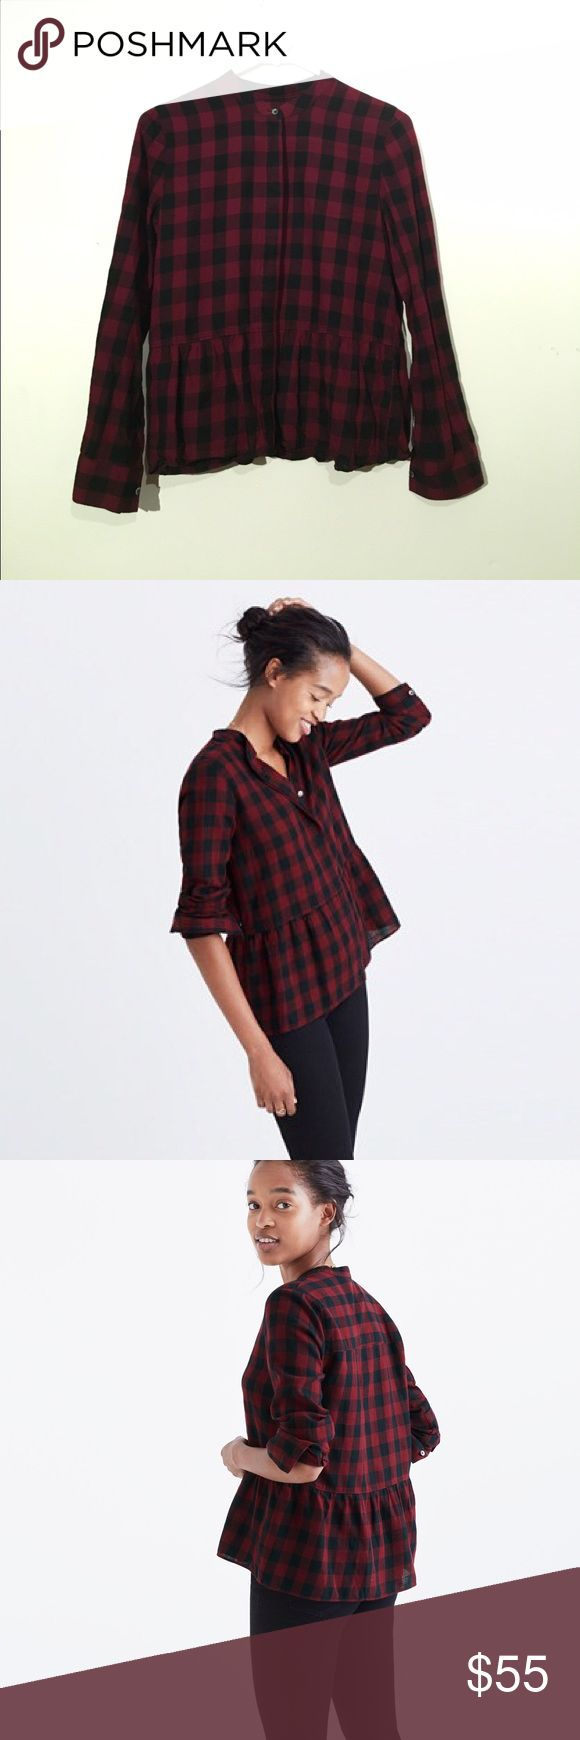 lakeside peplum shirt in buffalo check One time wear -Equal parts tomboy and lady, this gauzy button-down has a low-key peplum thing happening. Work, weekend—this buffalo-check shirt can do it all.  True to size. Cotton. Machine wash Madewell Tops Button Down Shirts